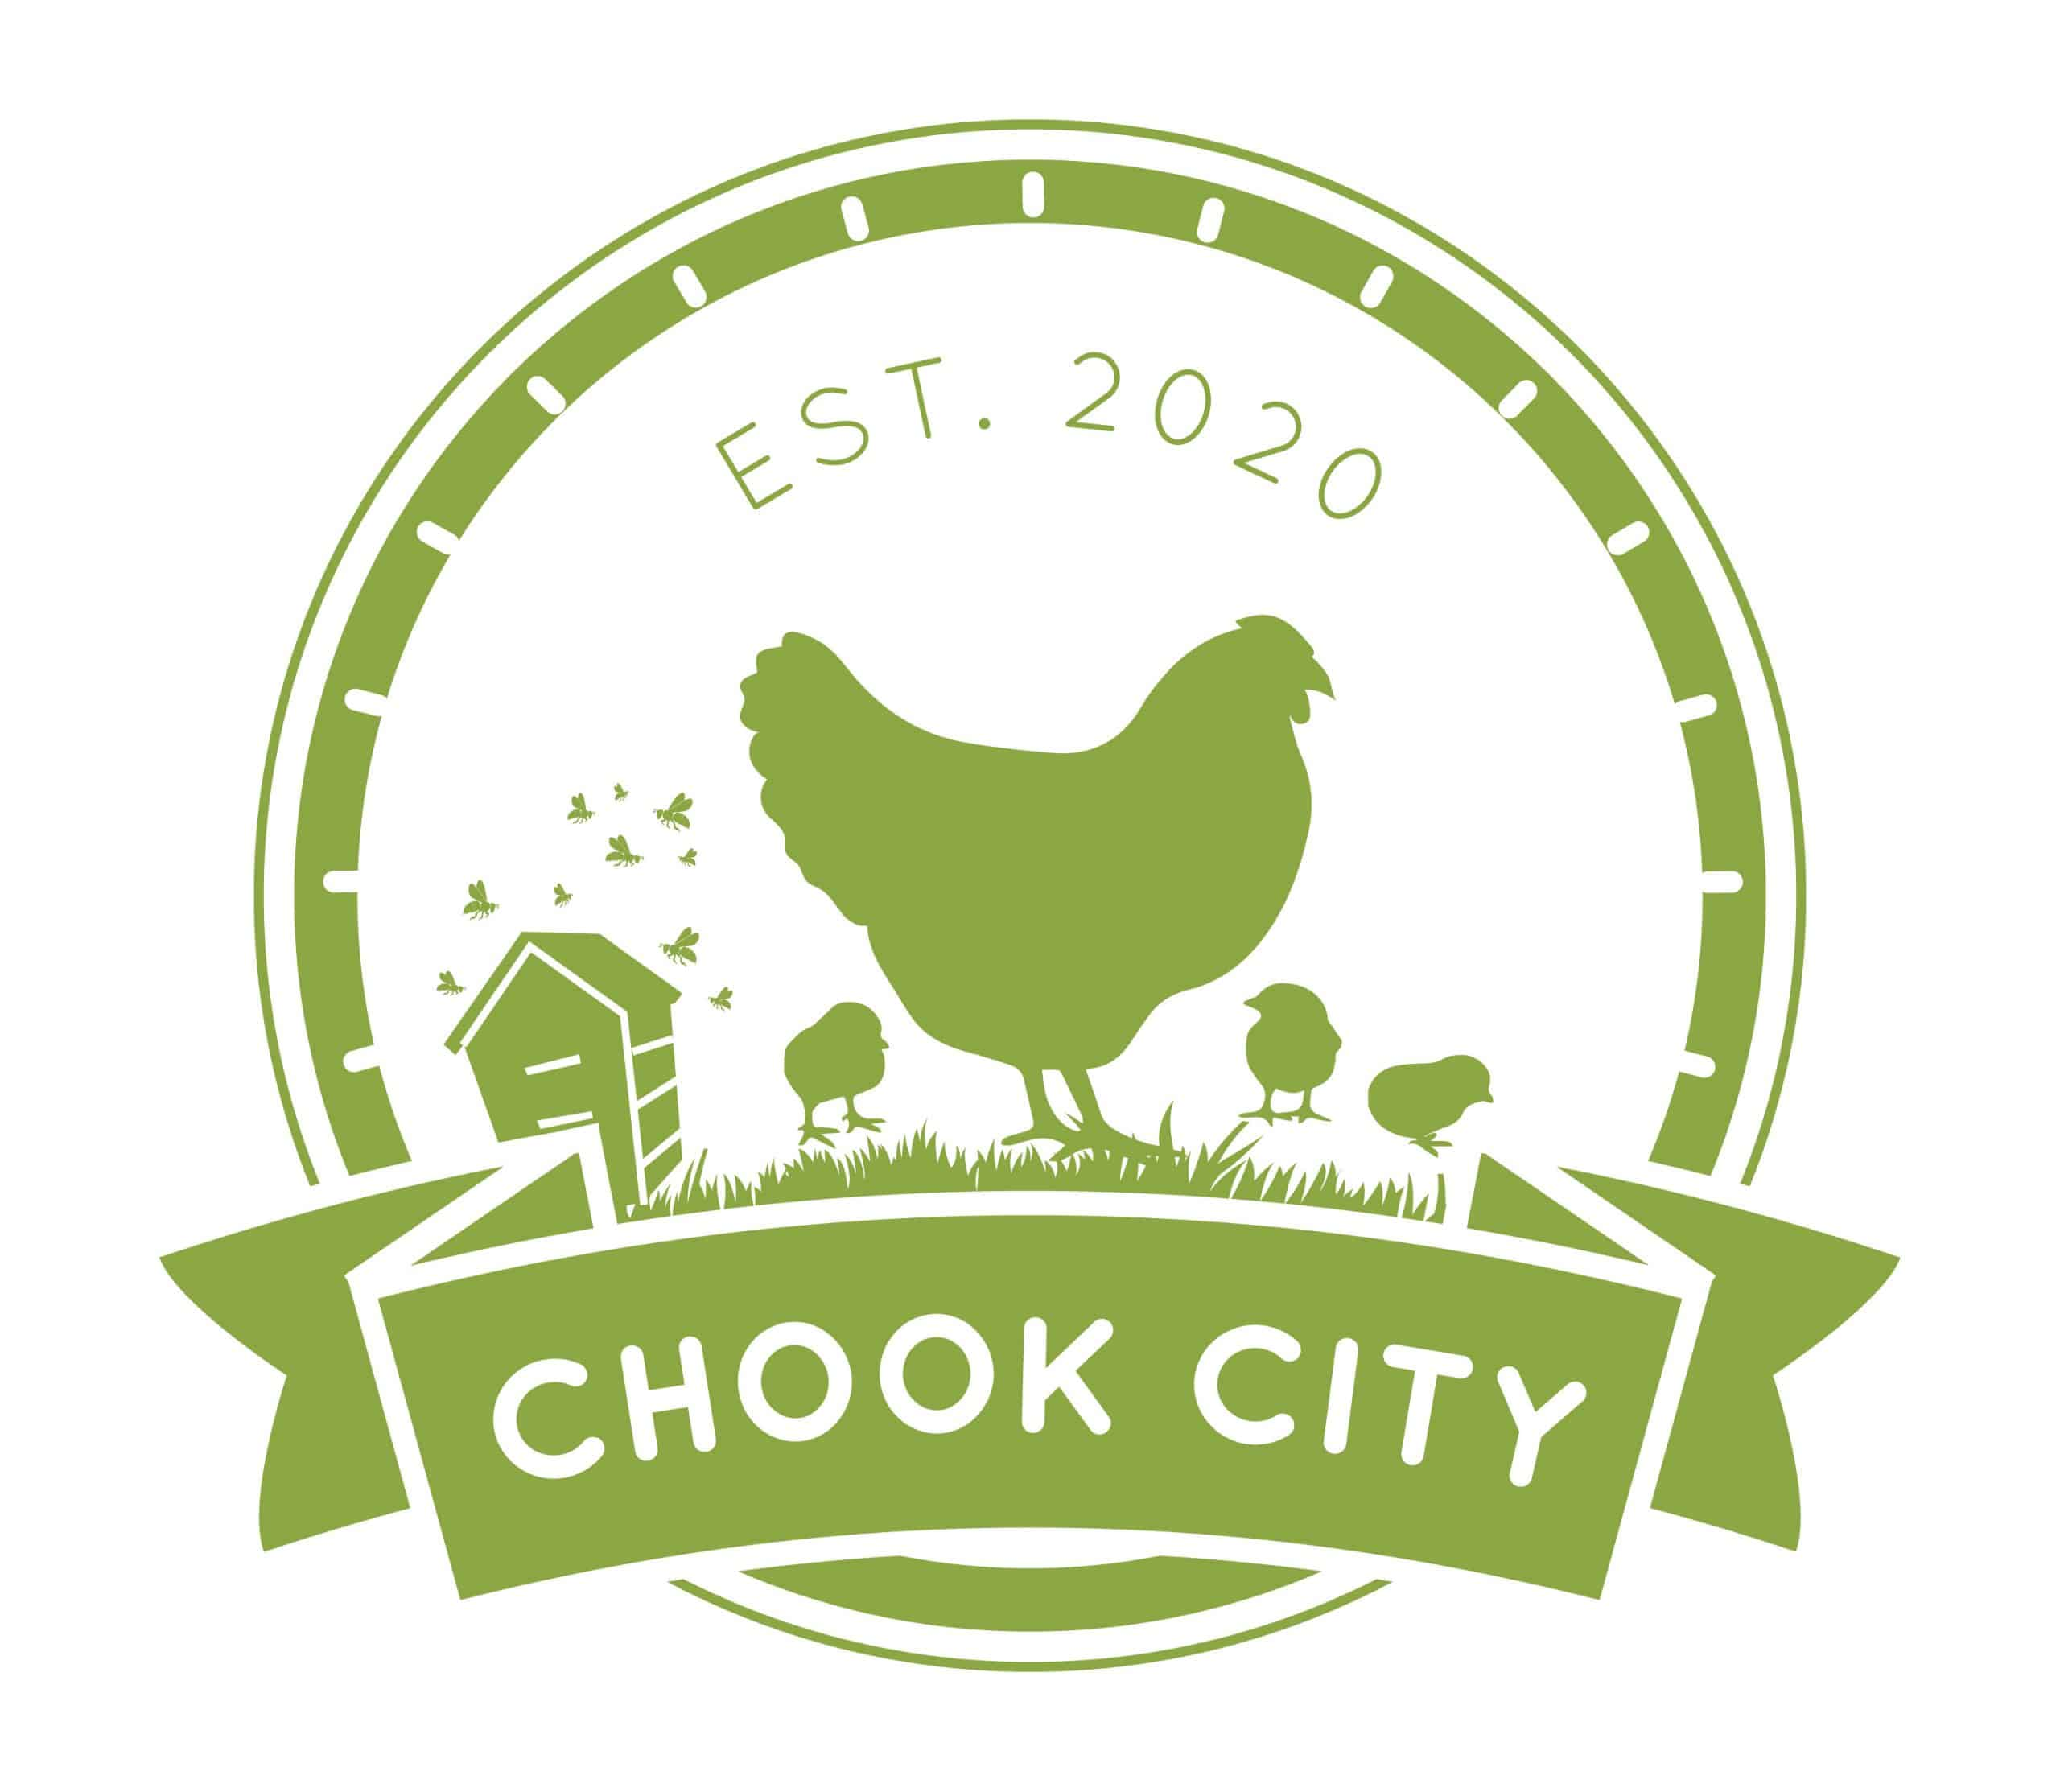 Chook City